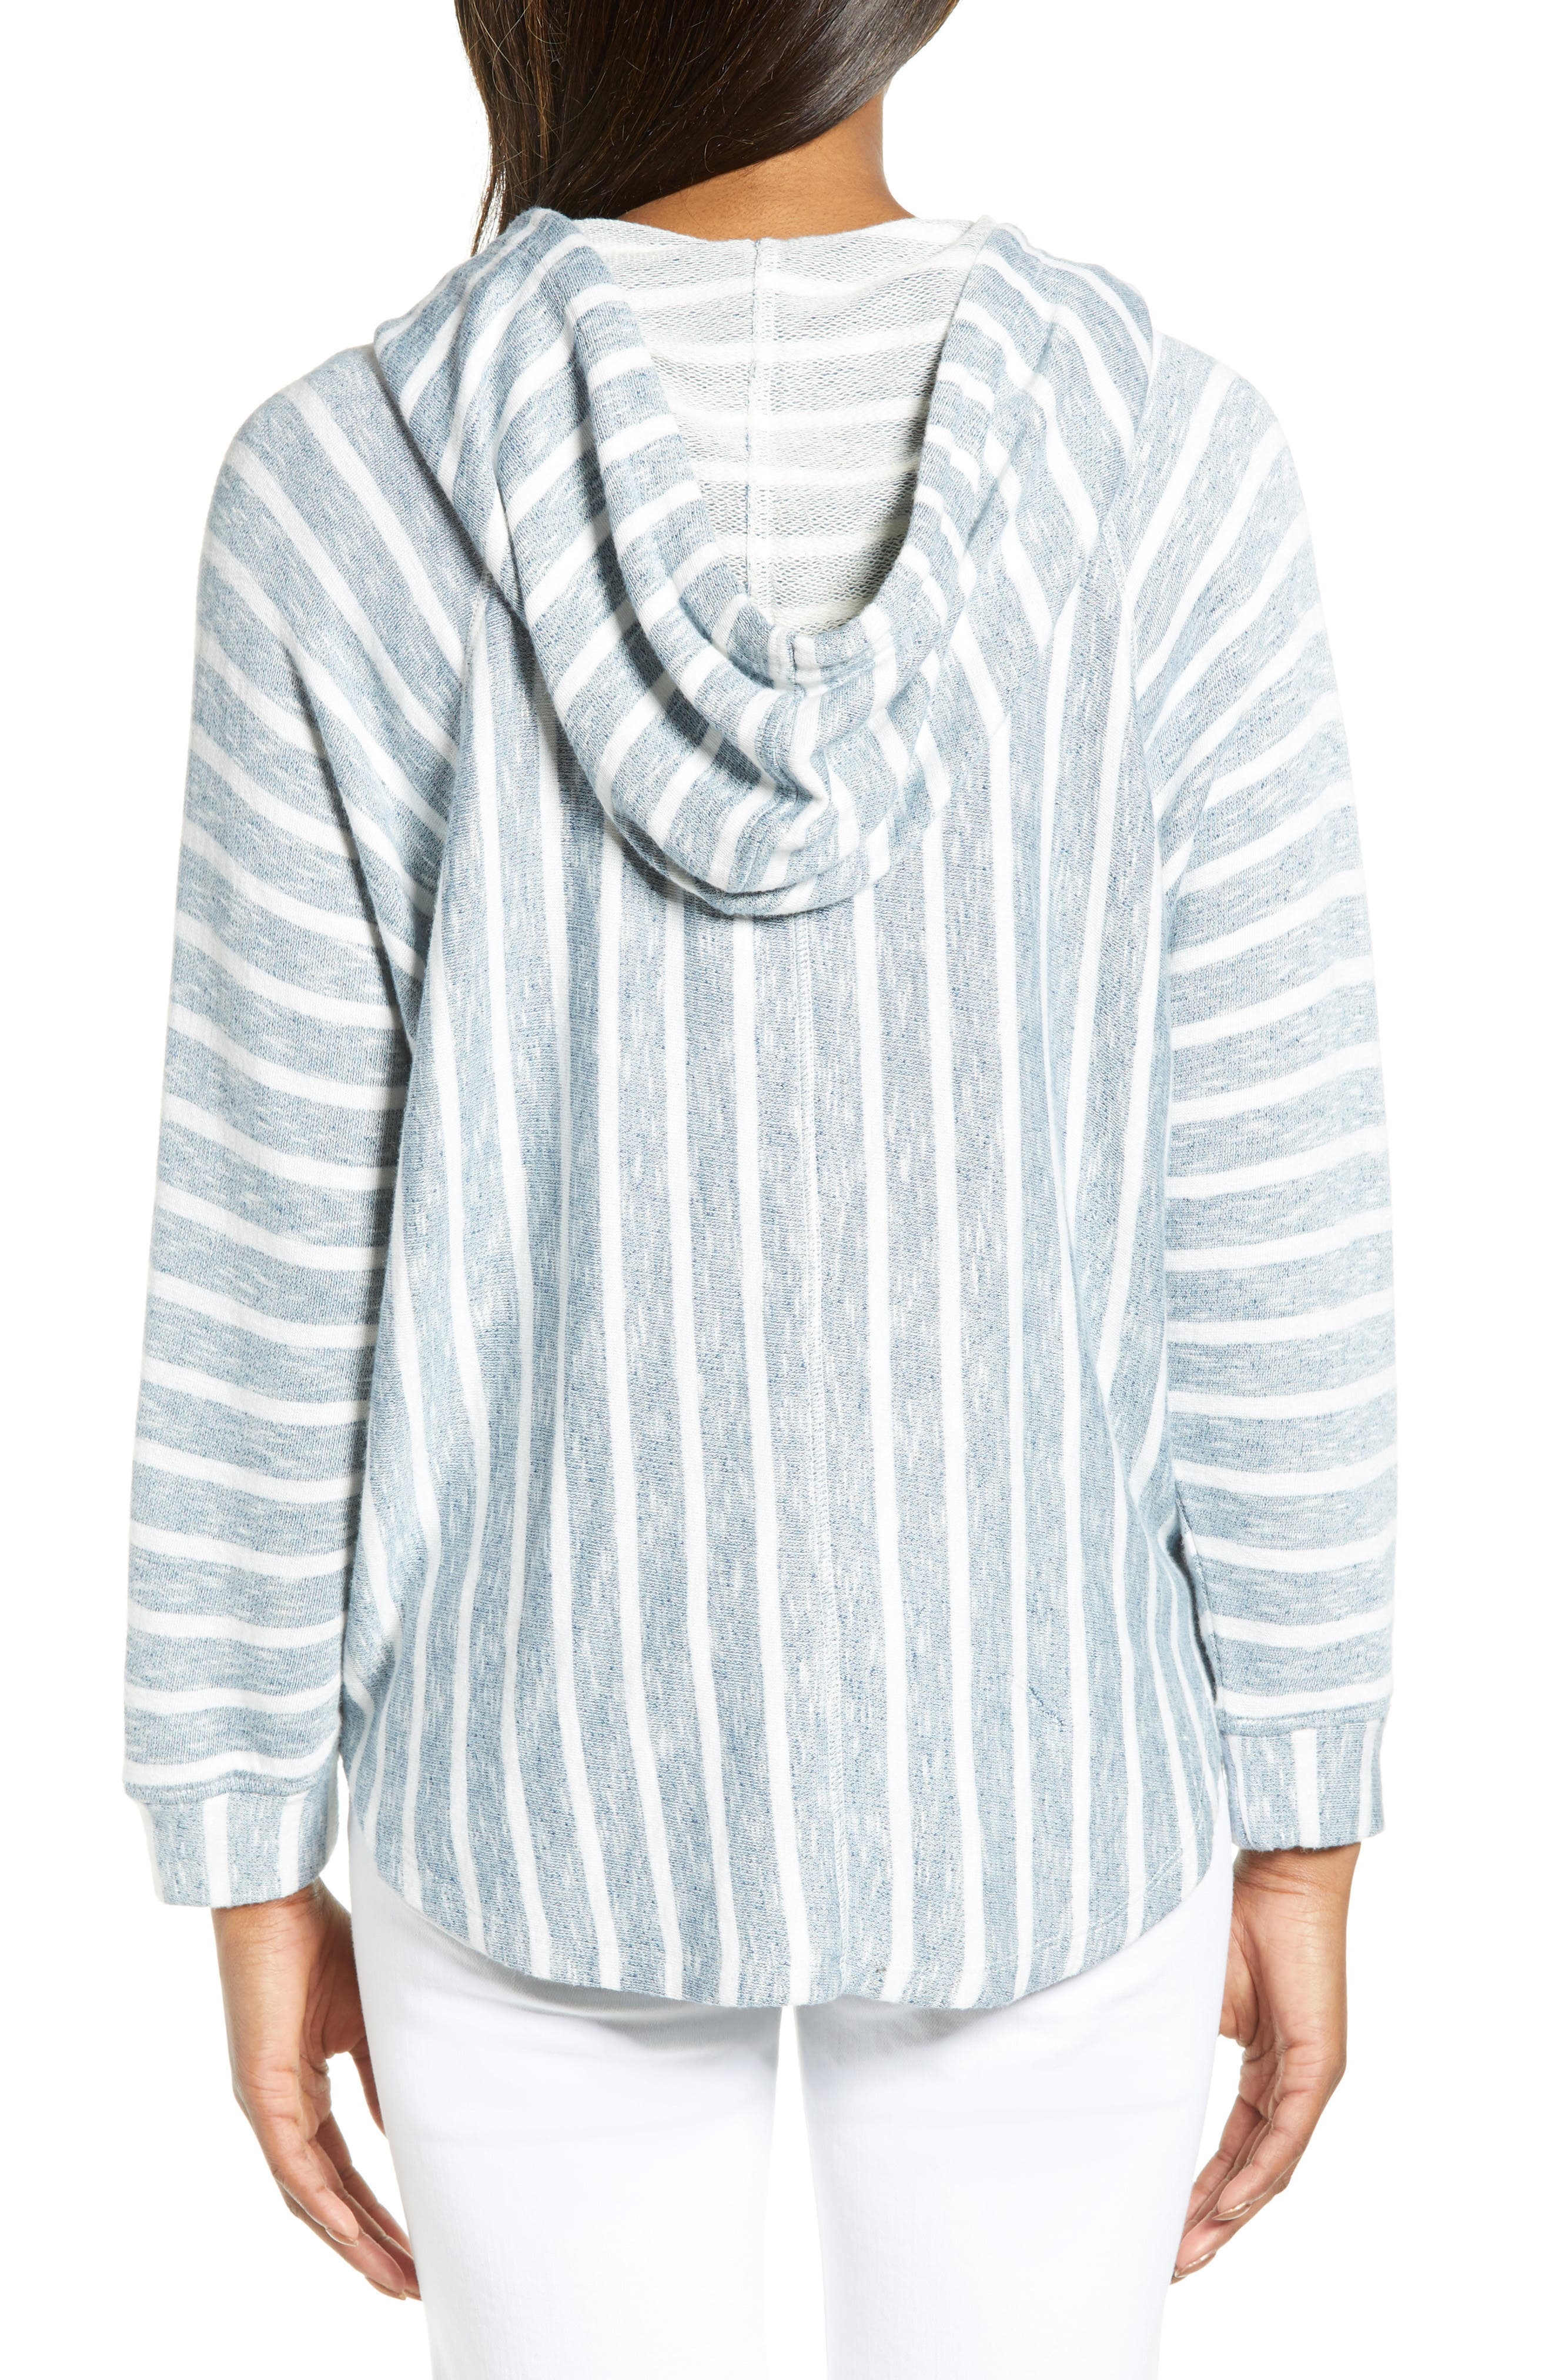 LUCKY BRAND, Striped Hooded Poncho, Alternate thumbnail 2, color, BLUE MULTI